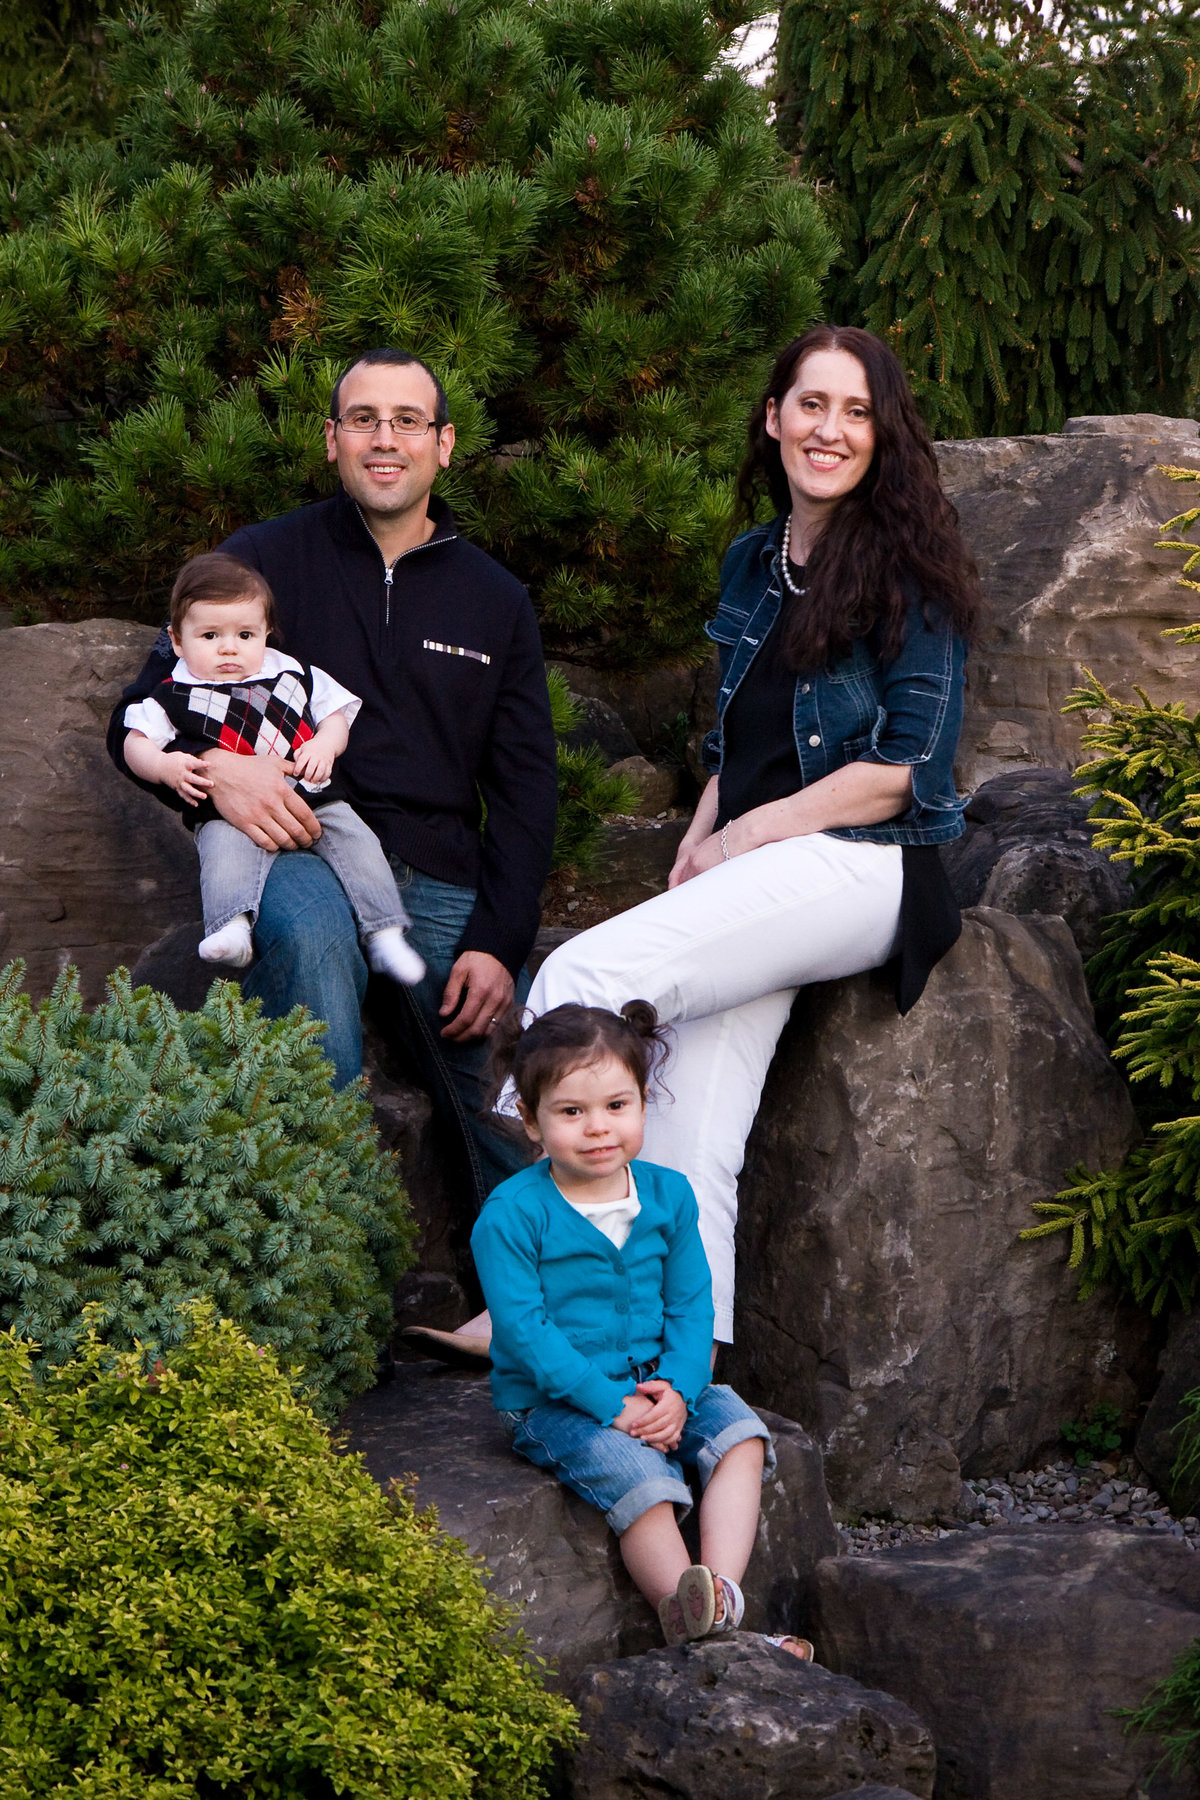 Family Portrait on rocks at arboretum